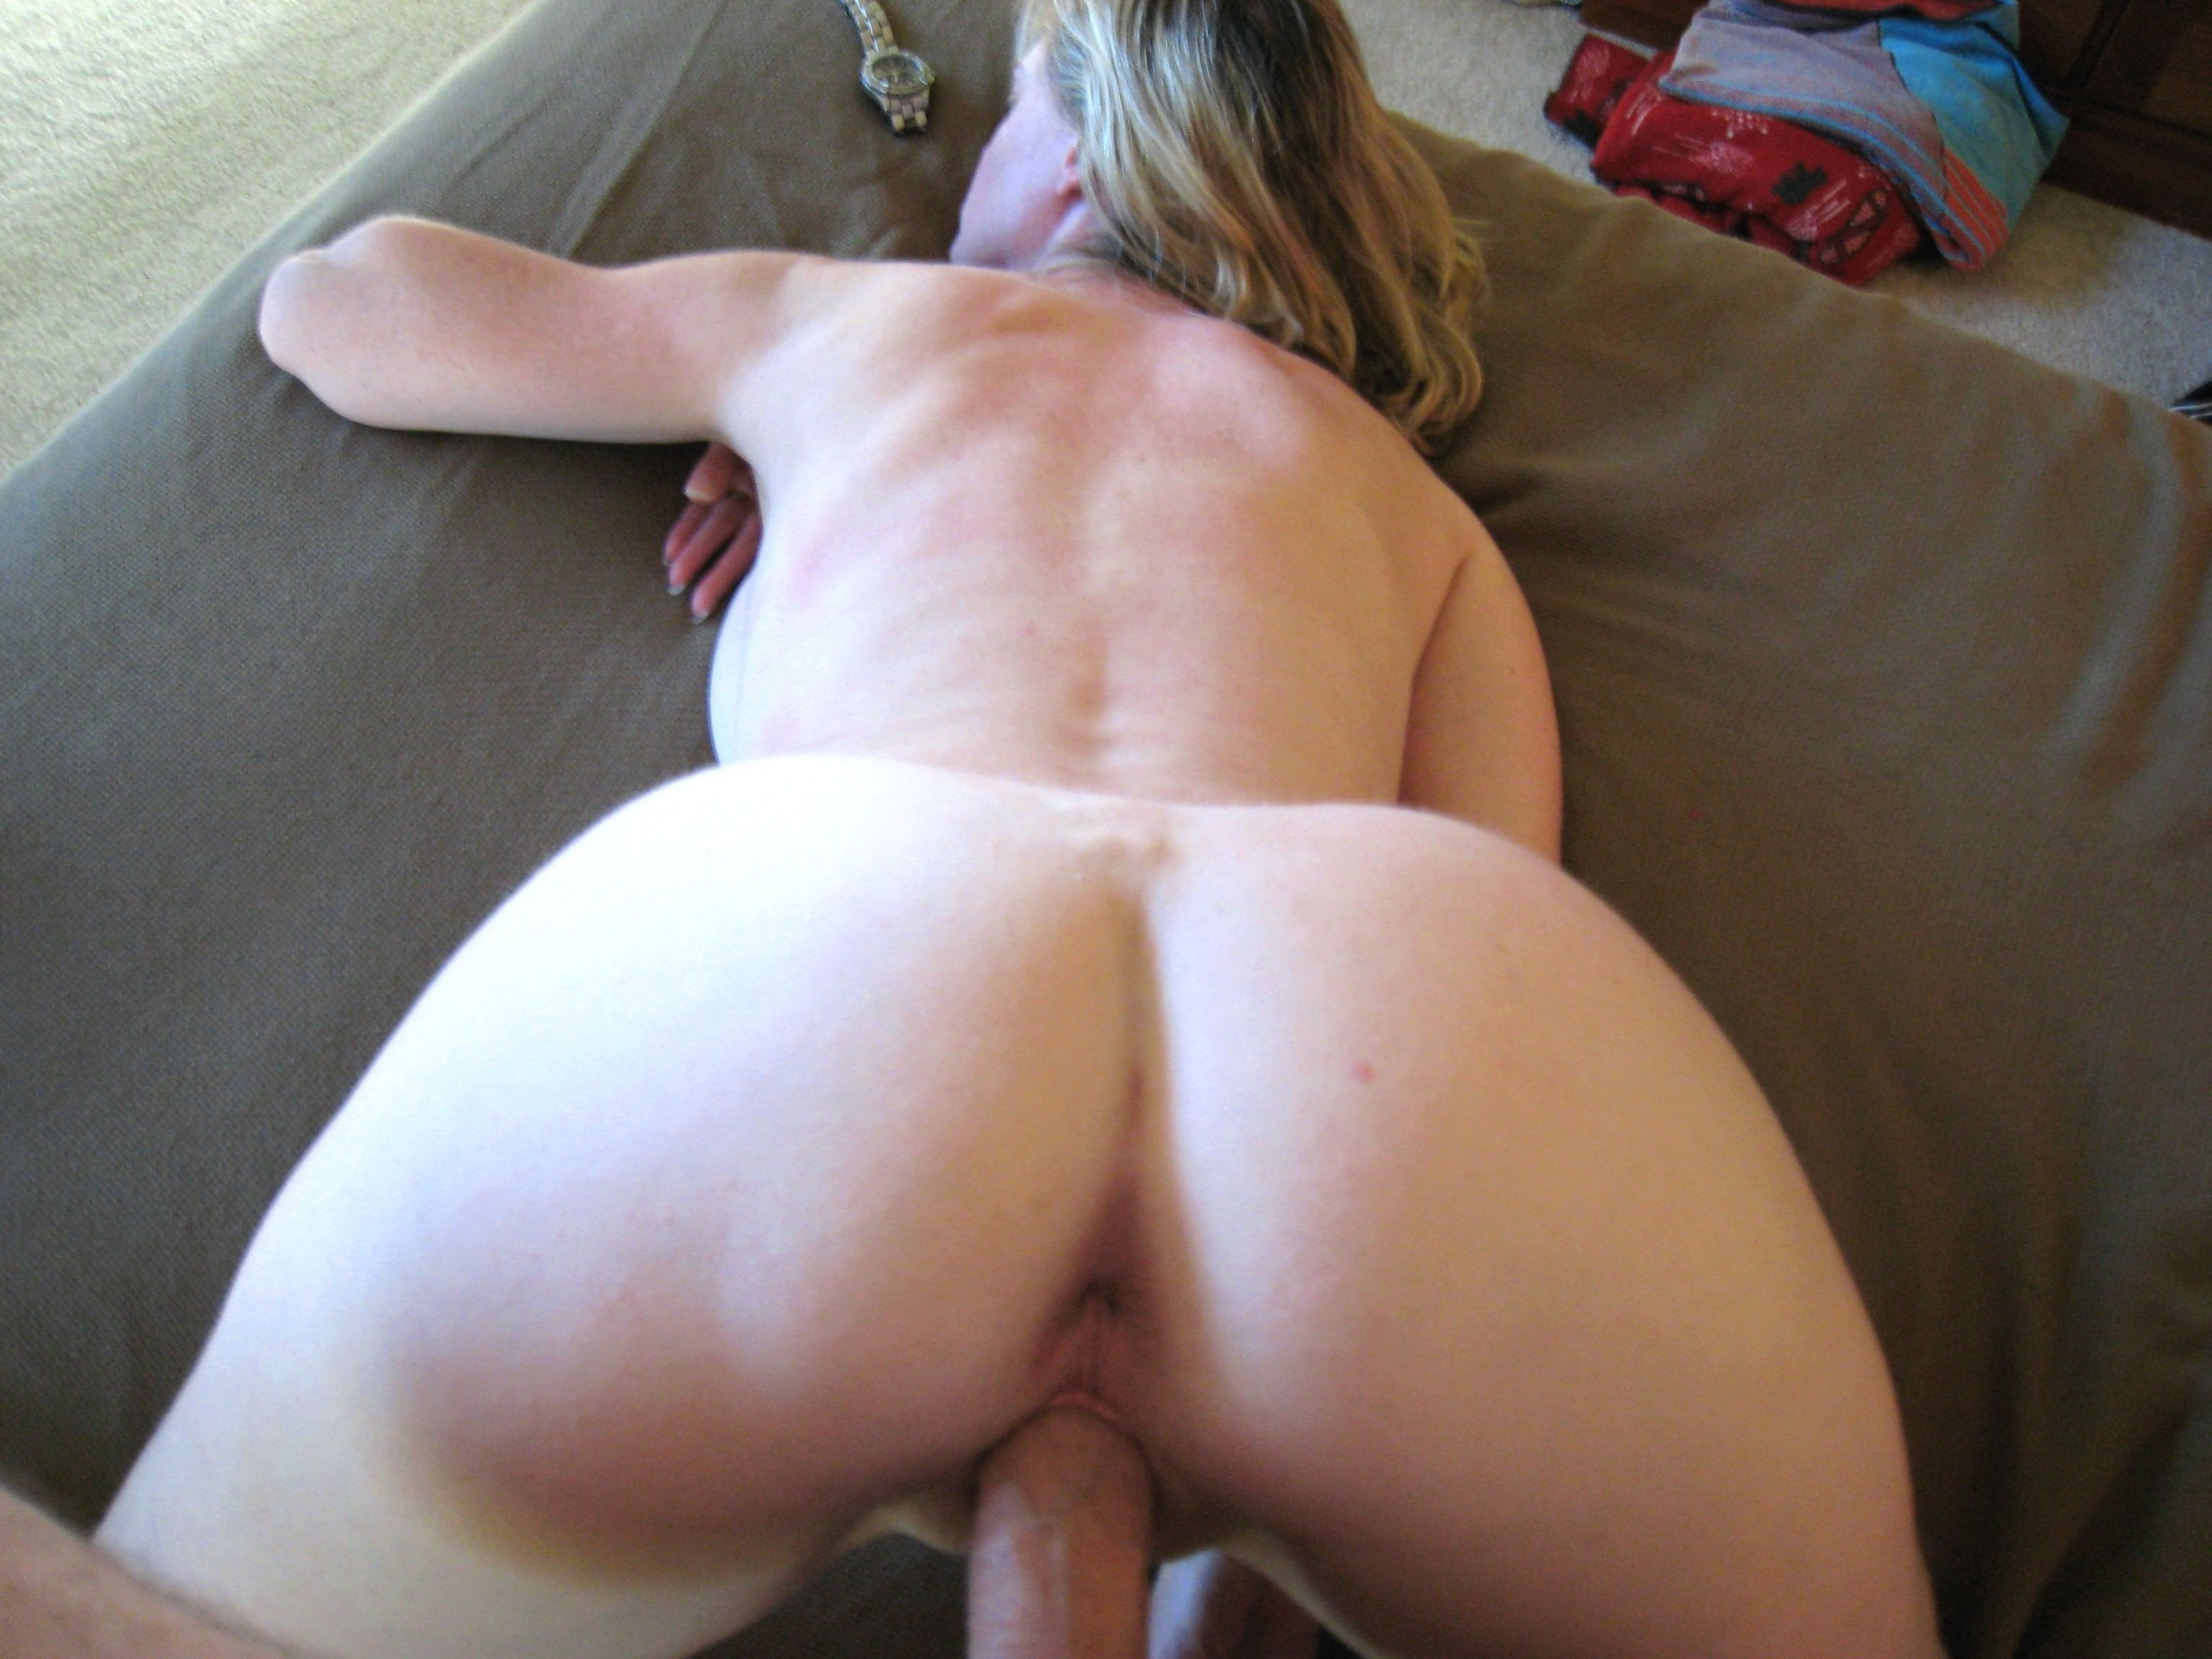 Hubby gets hard watching his wife plowed by bbc 2